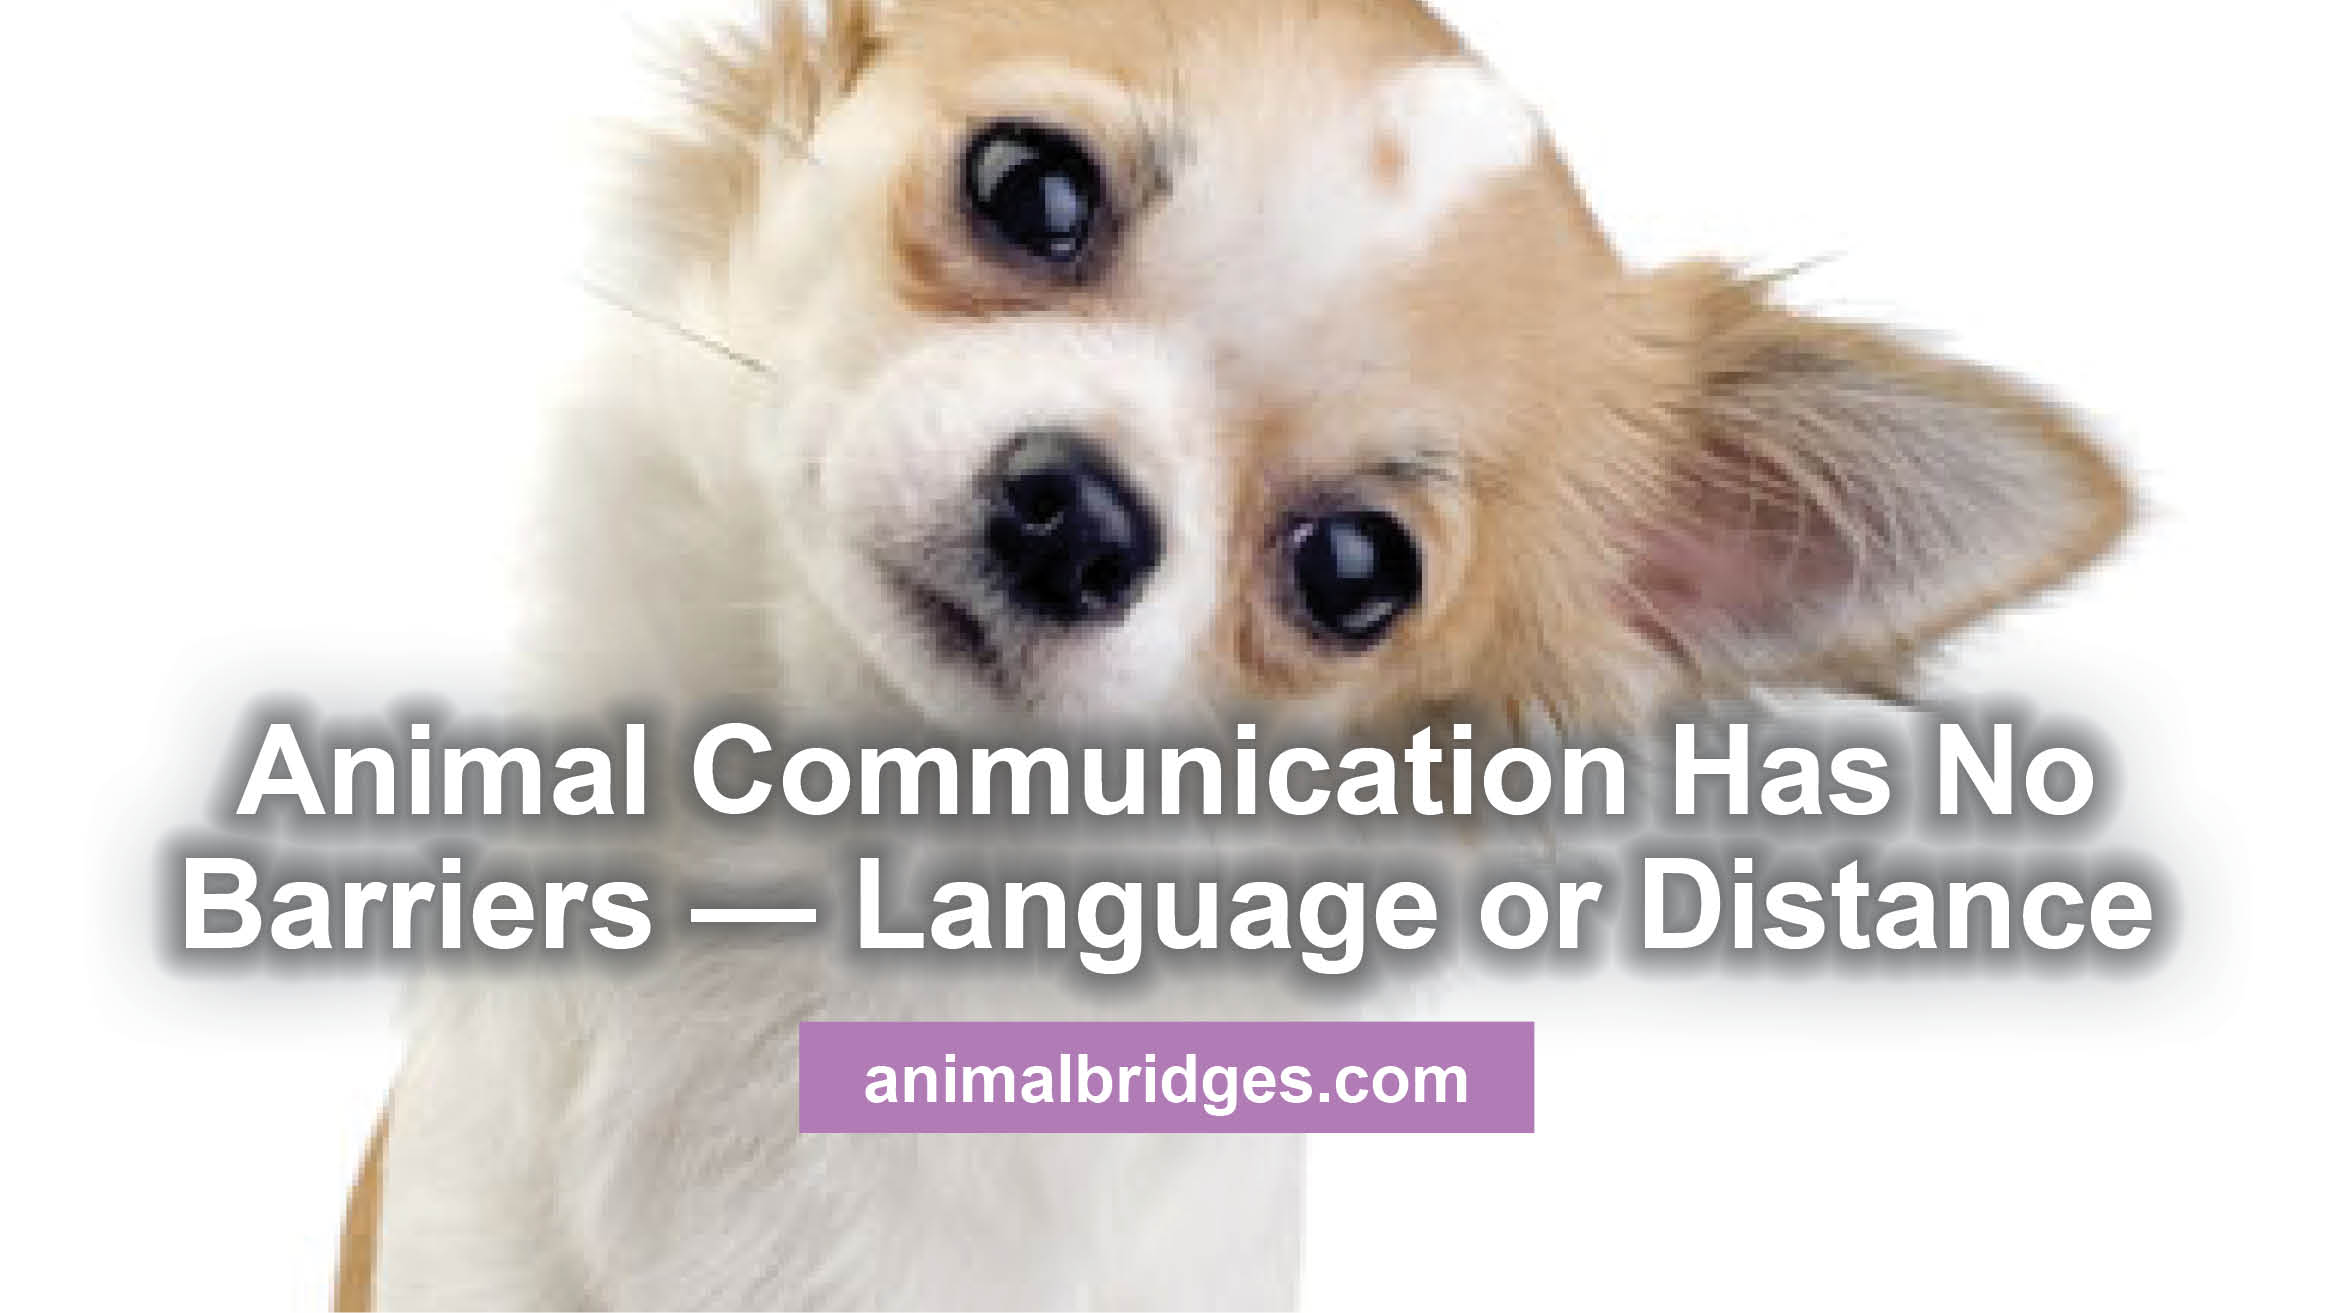 Animal communication has no barriers - language or distance